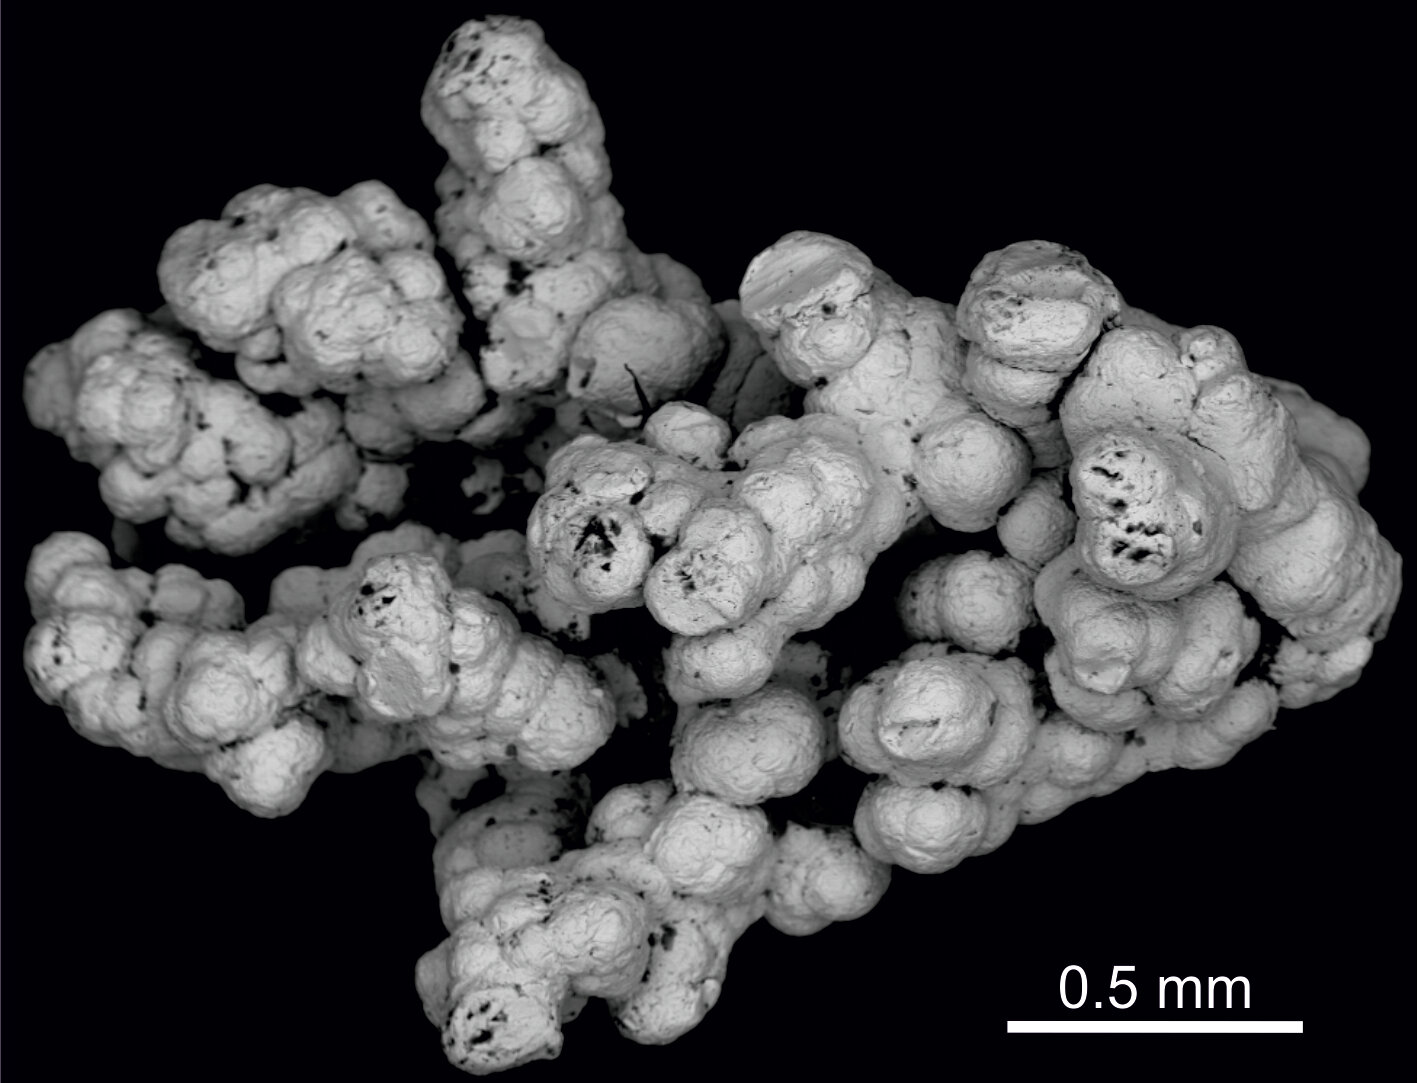 Selenium may support deep microbial life in Earth's continental crust - Phys.org